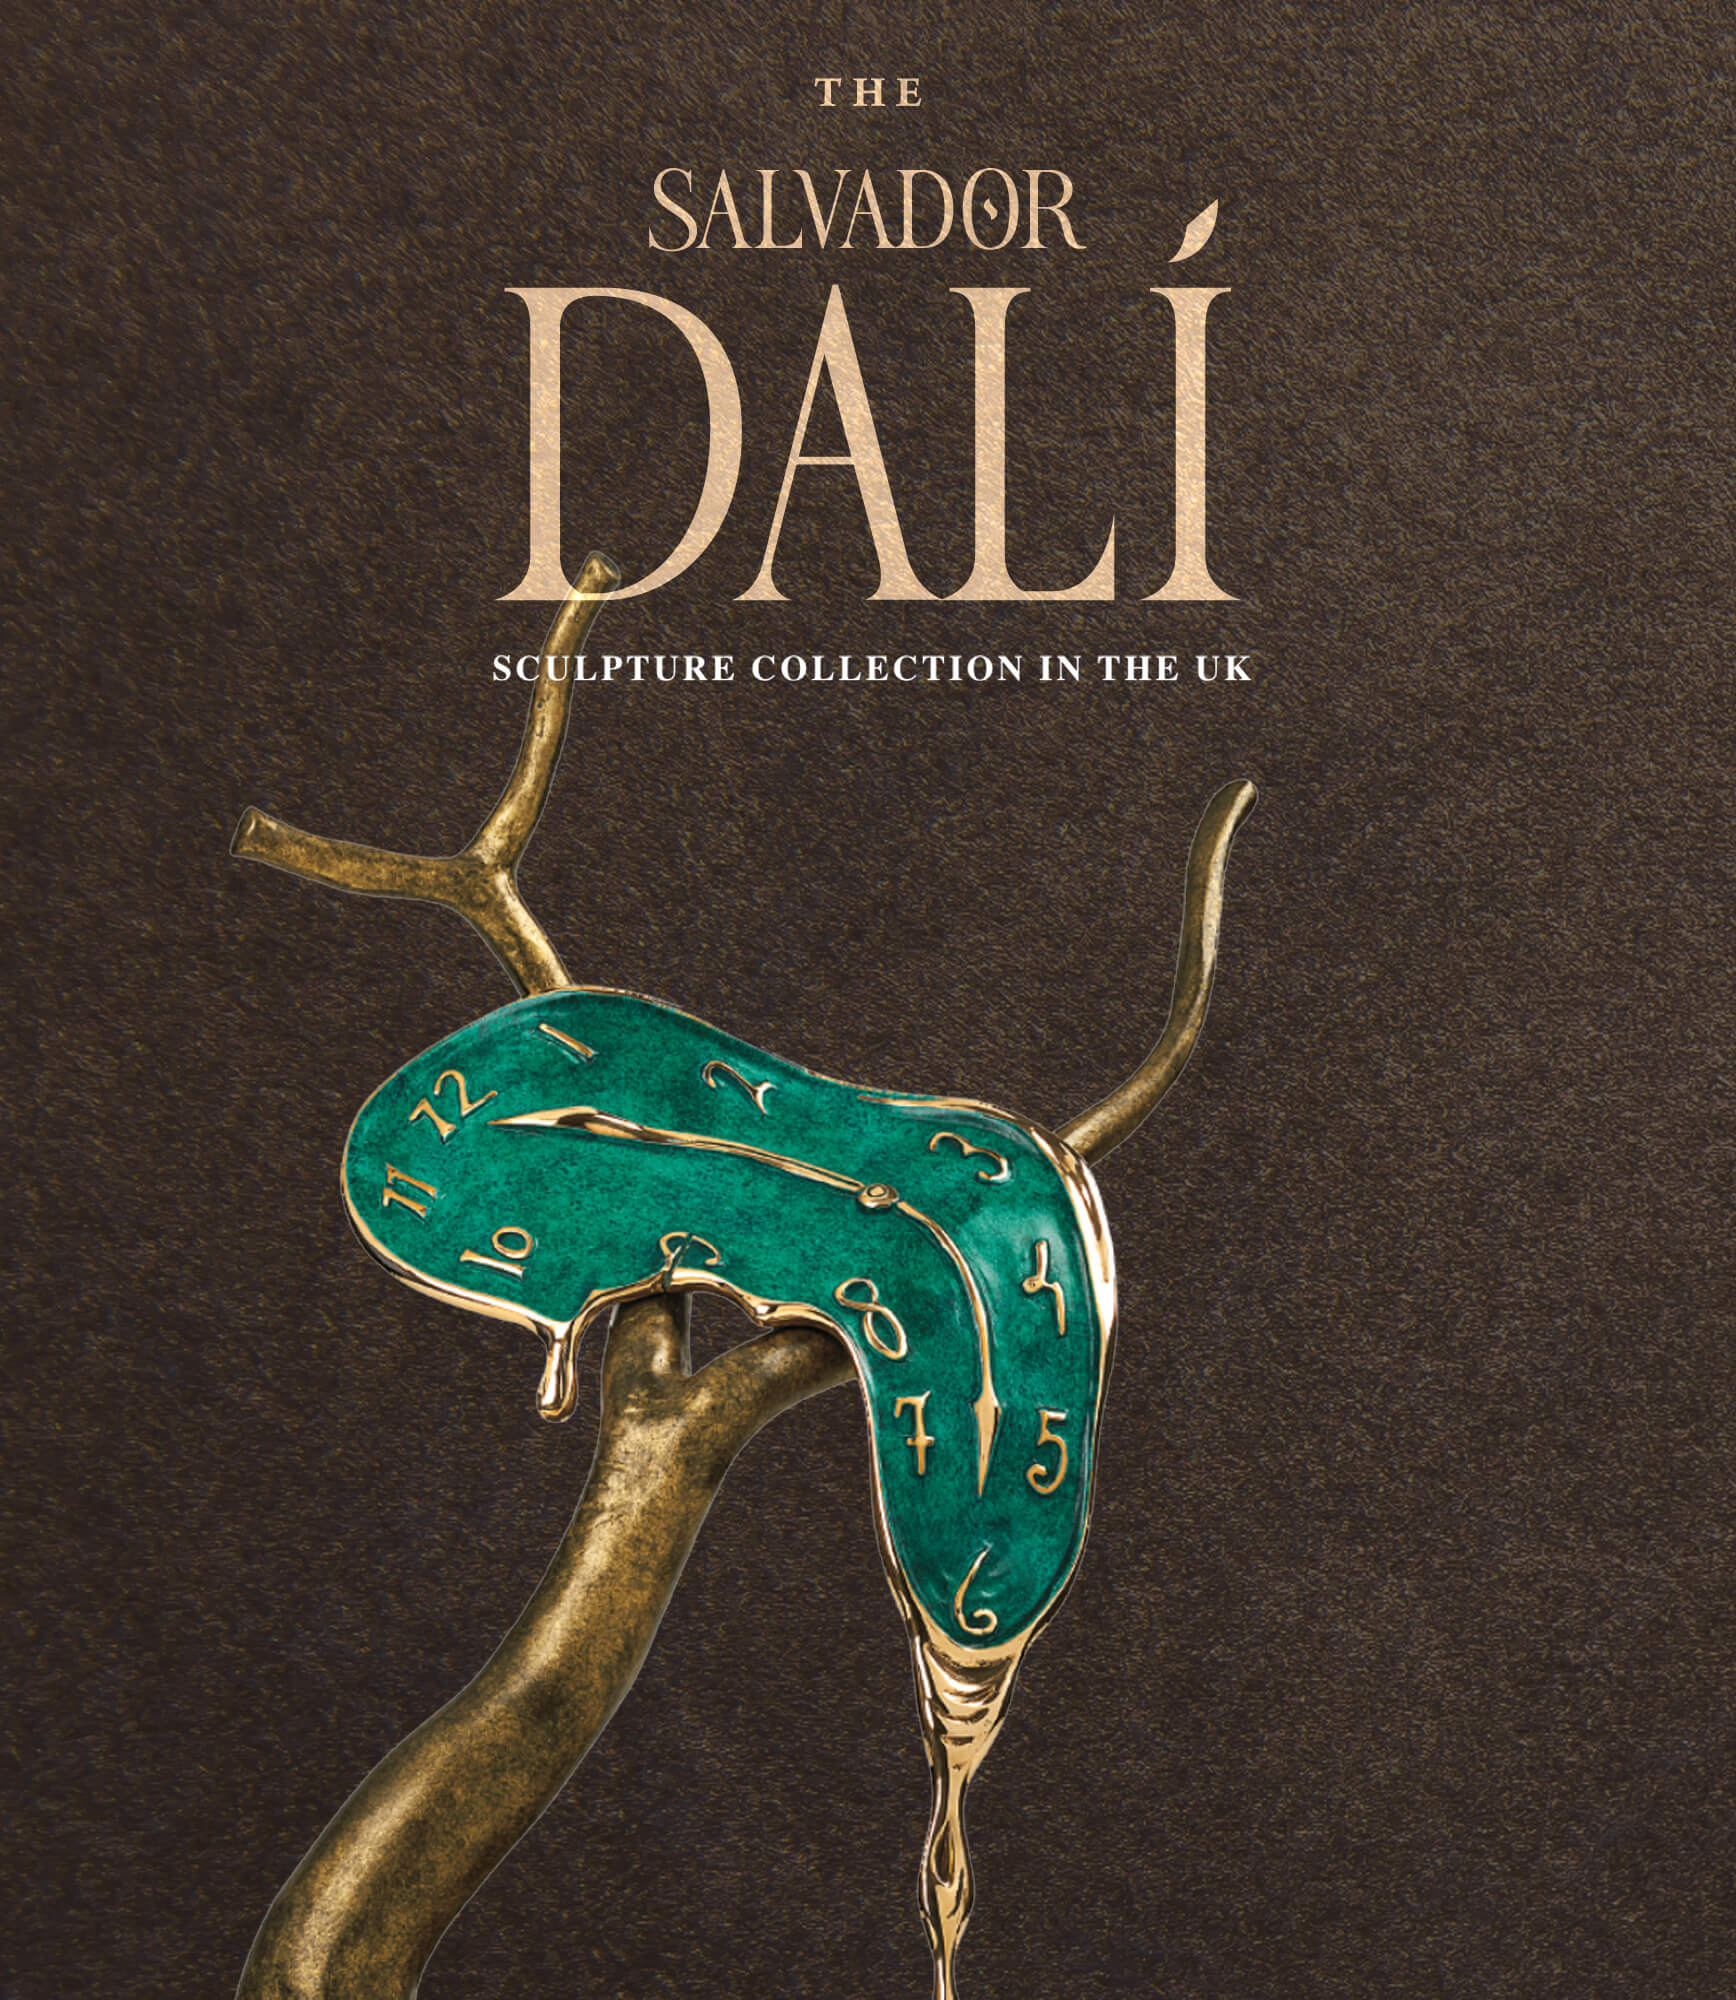 Dali Sculpture collection image